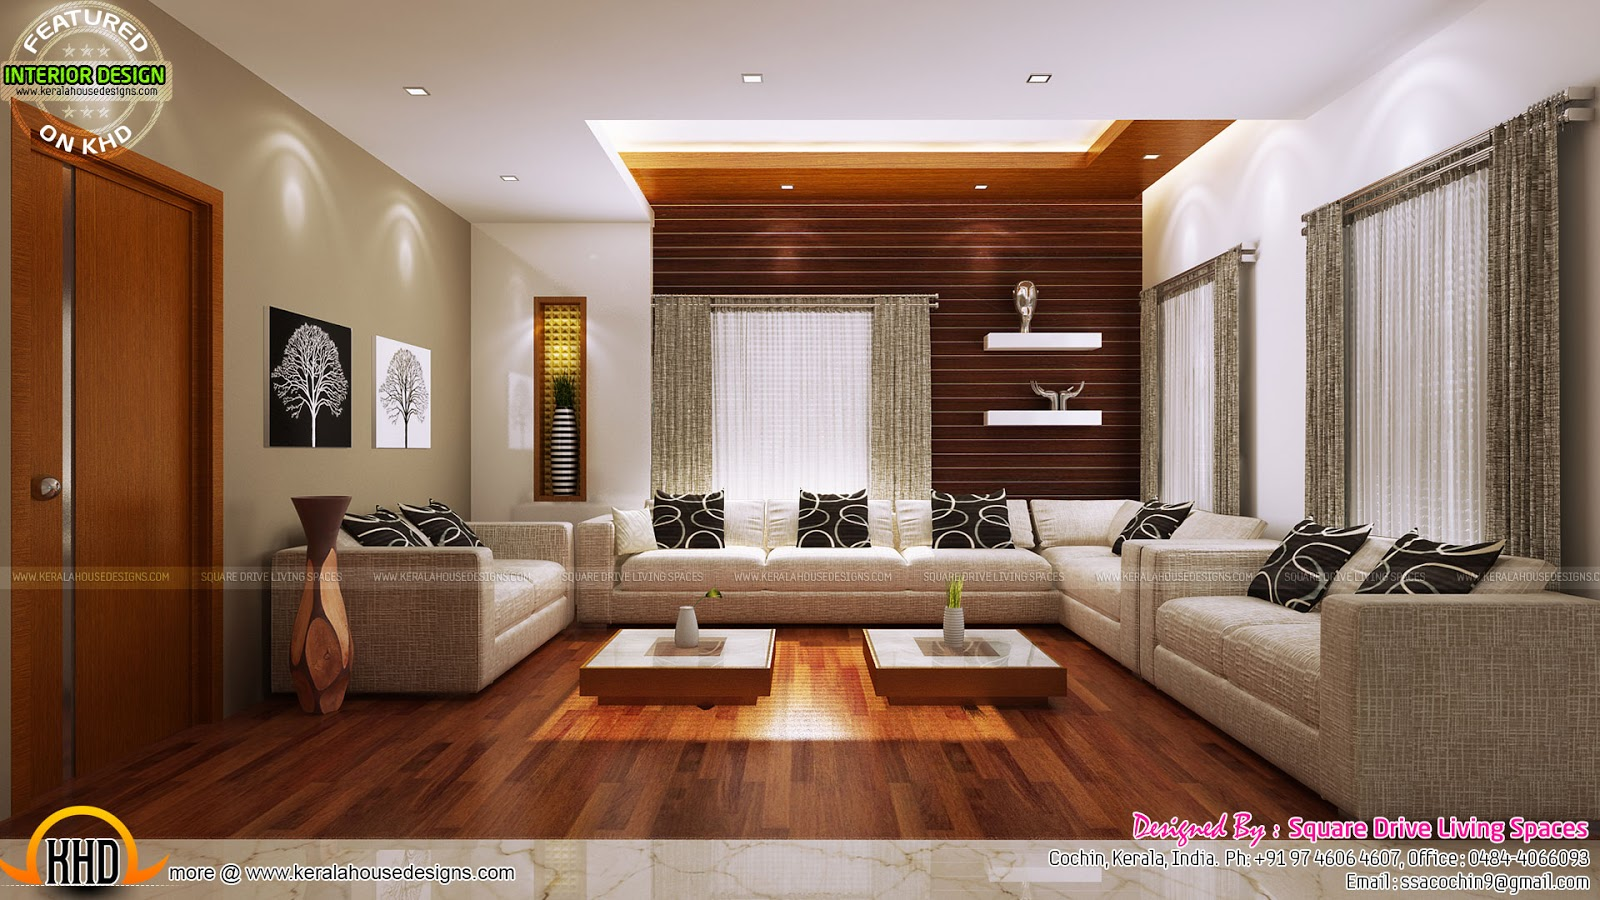 Excellent kerala interior design kerala home design and for Kerala home interior design ideas